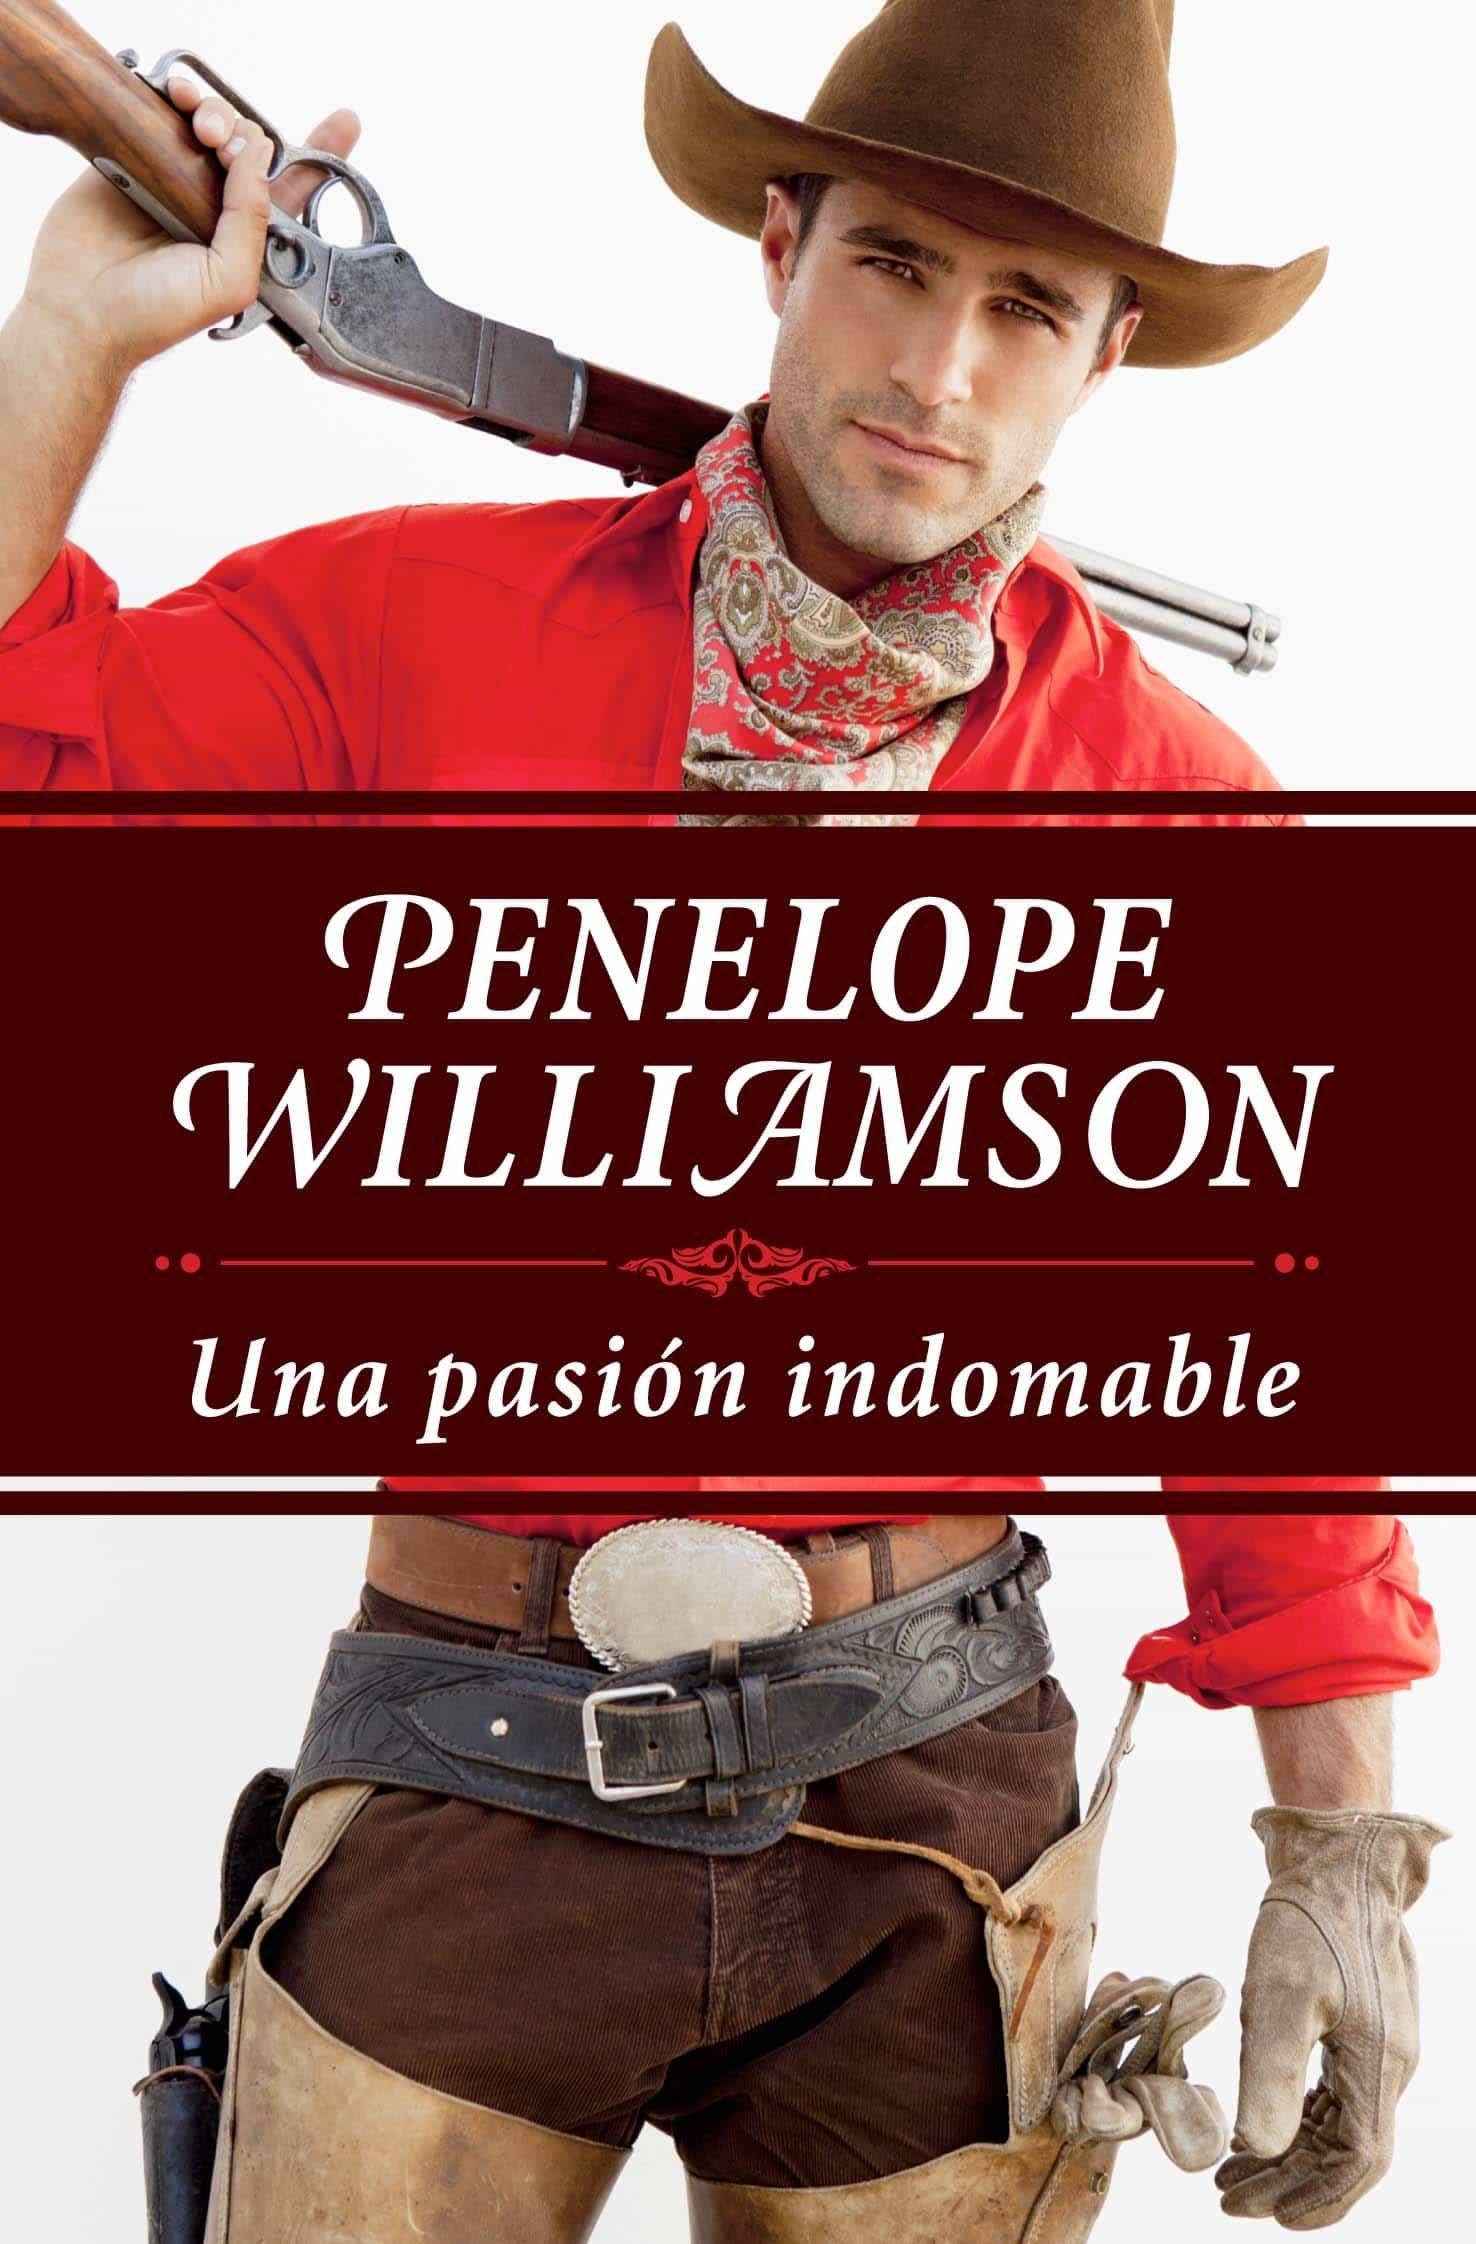 Indomable Libro Una PasiÓn Indomable Ebook Penelope Williamson Descargar Libro Pdf O Epub 9788490321003